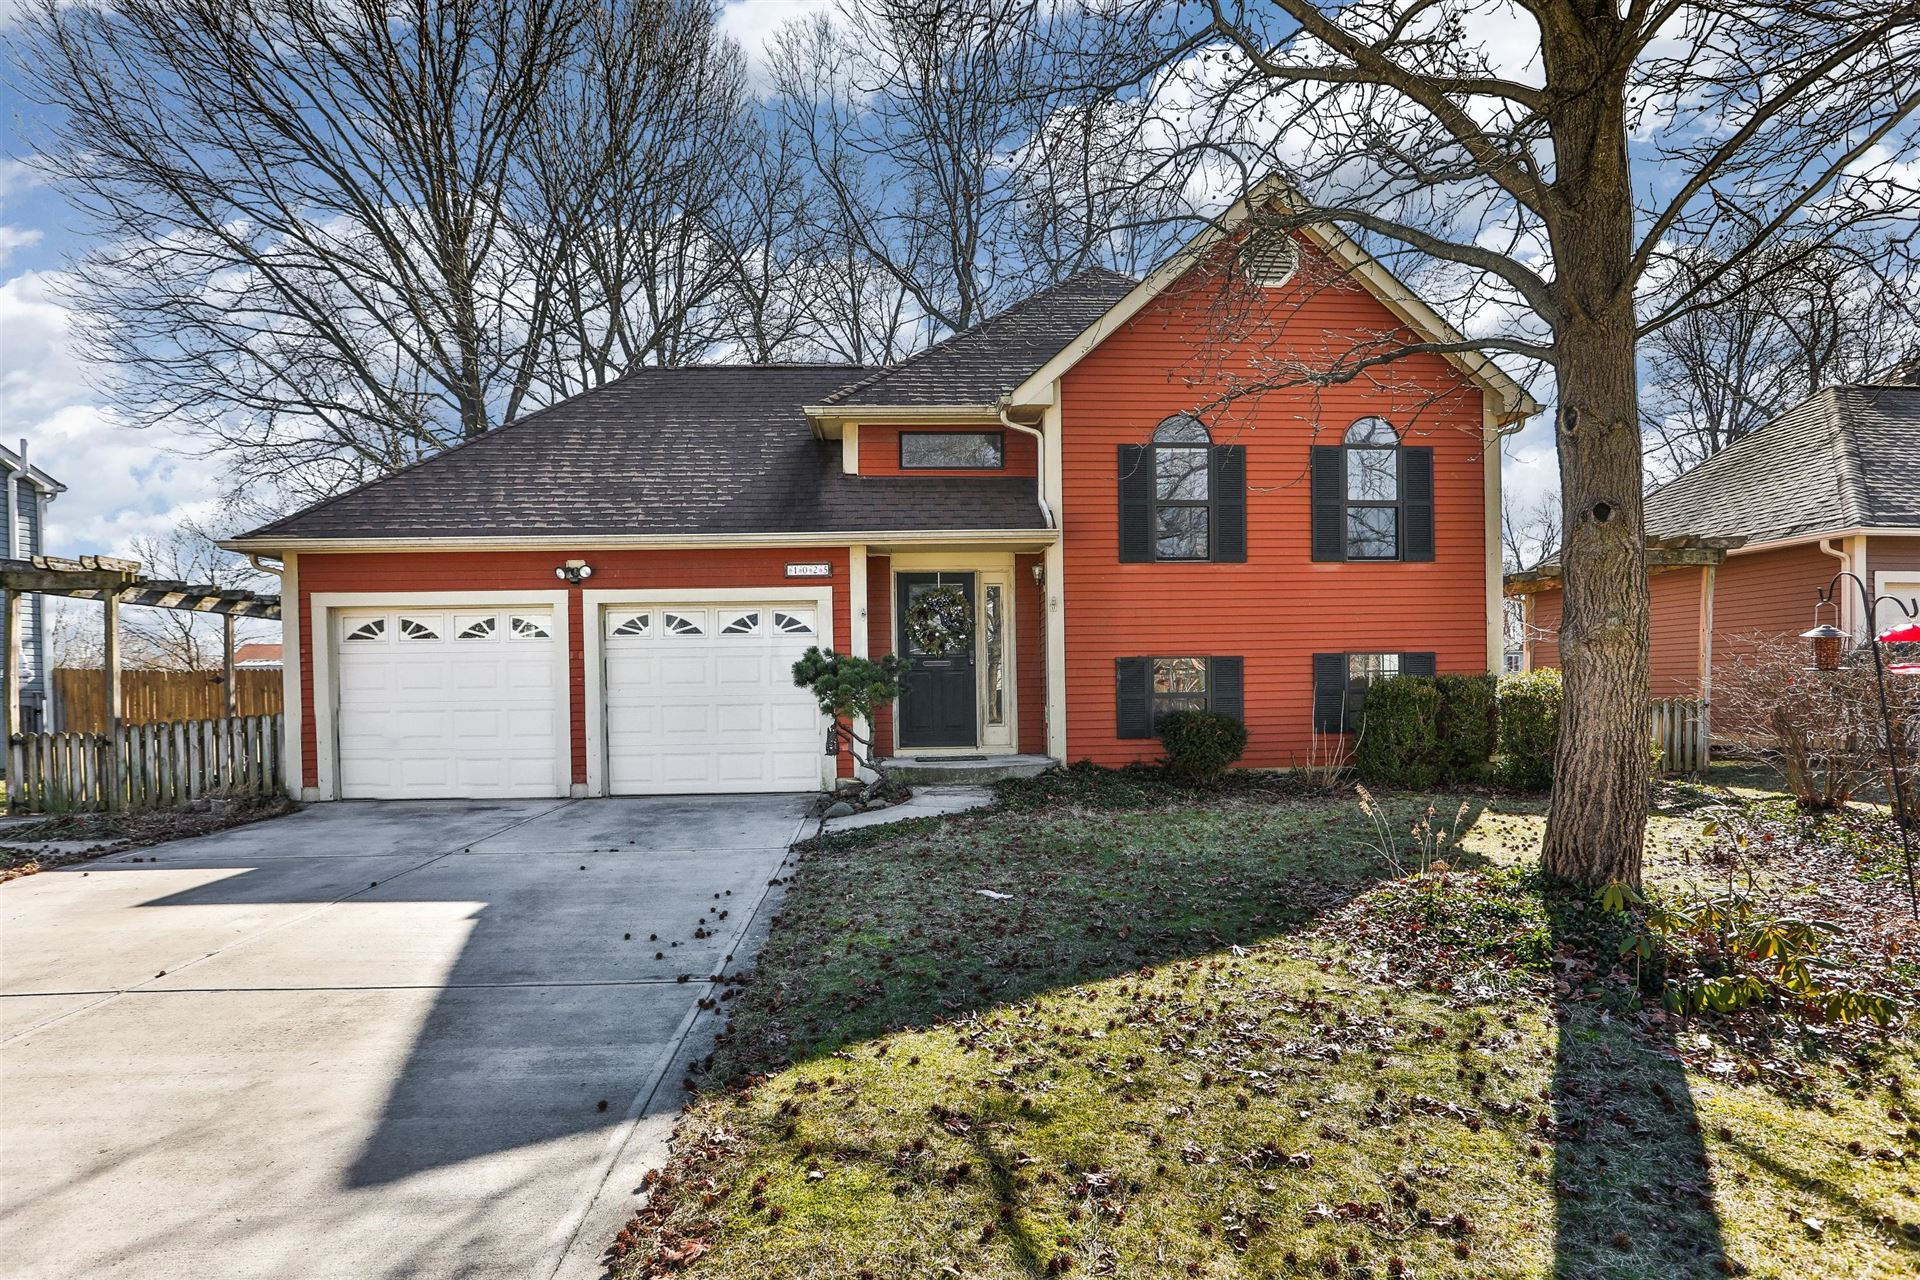 Photo of 1025 Crosshaven Court, Westerville, OH 43081 (MLS # 221005930)